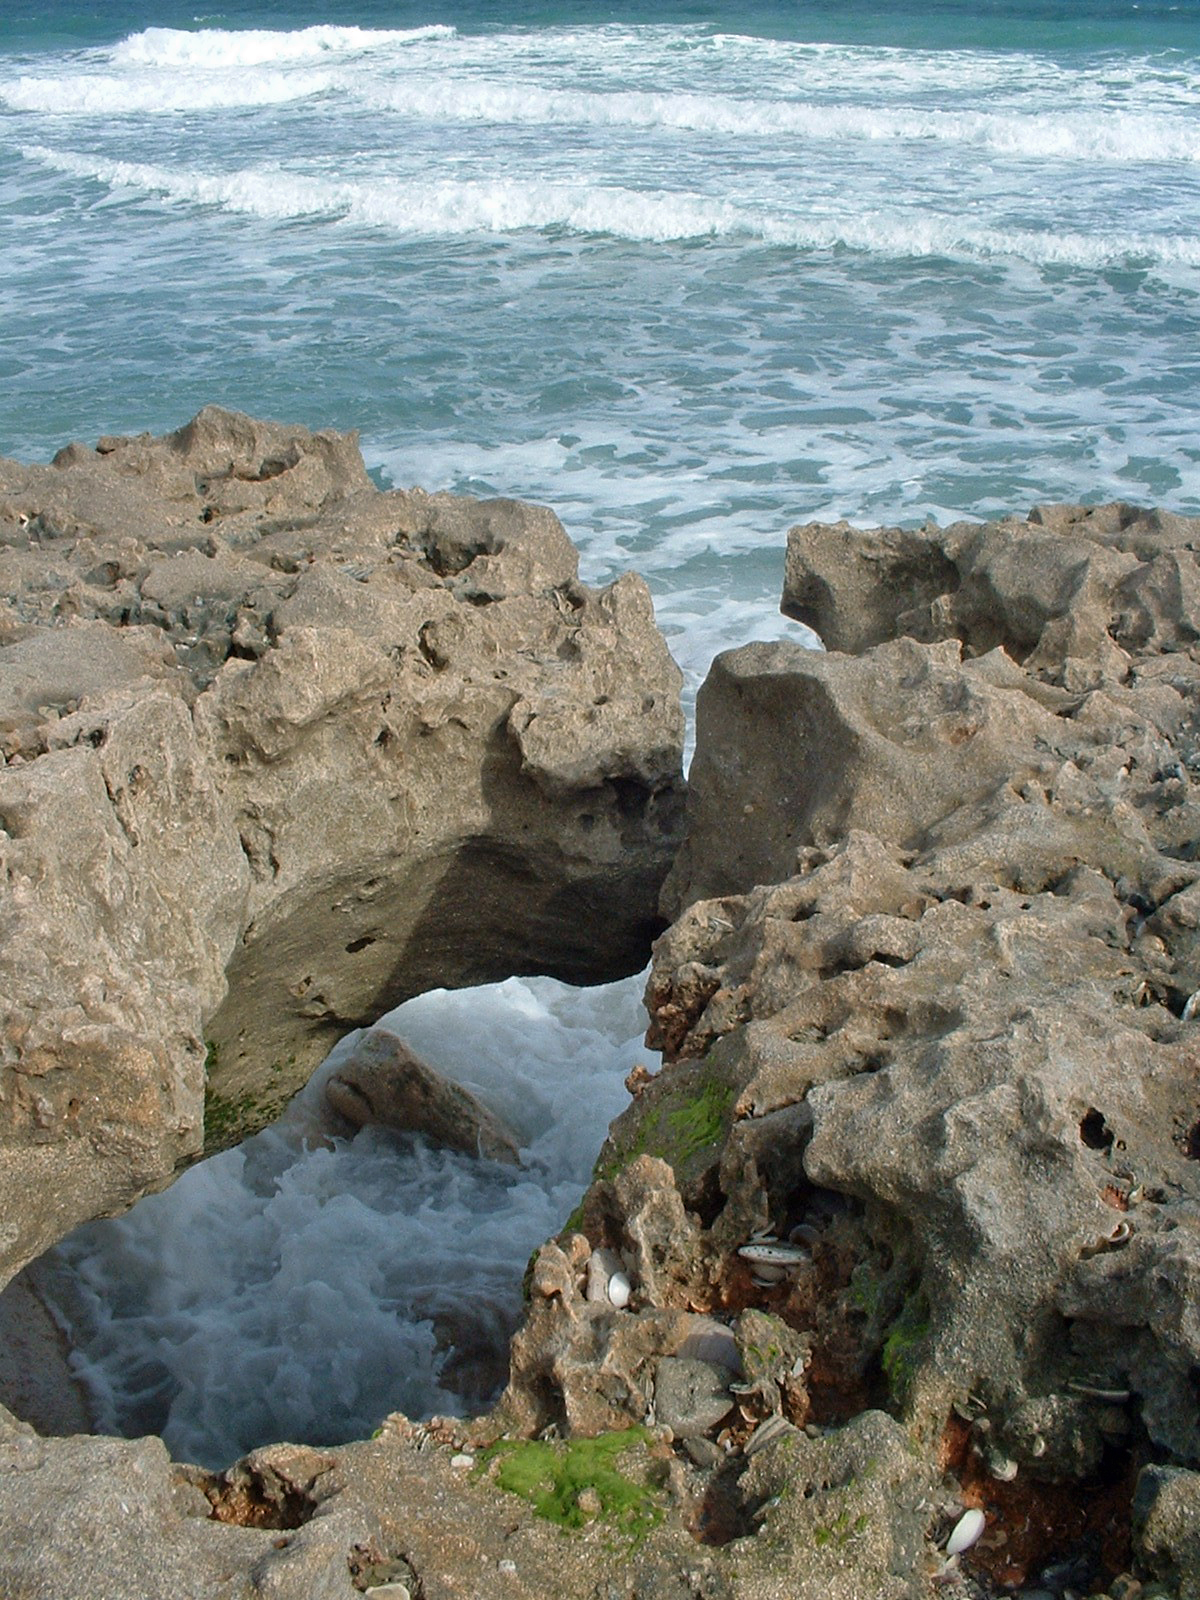 South florida guy blowing rocks beach hobe sound next visit ill plan a bit better and bring an umbrella picnic basket and tide chart to enjoy this nature show geenschuldenfo Images